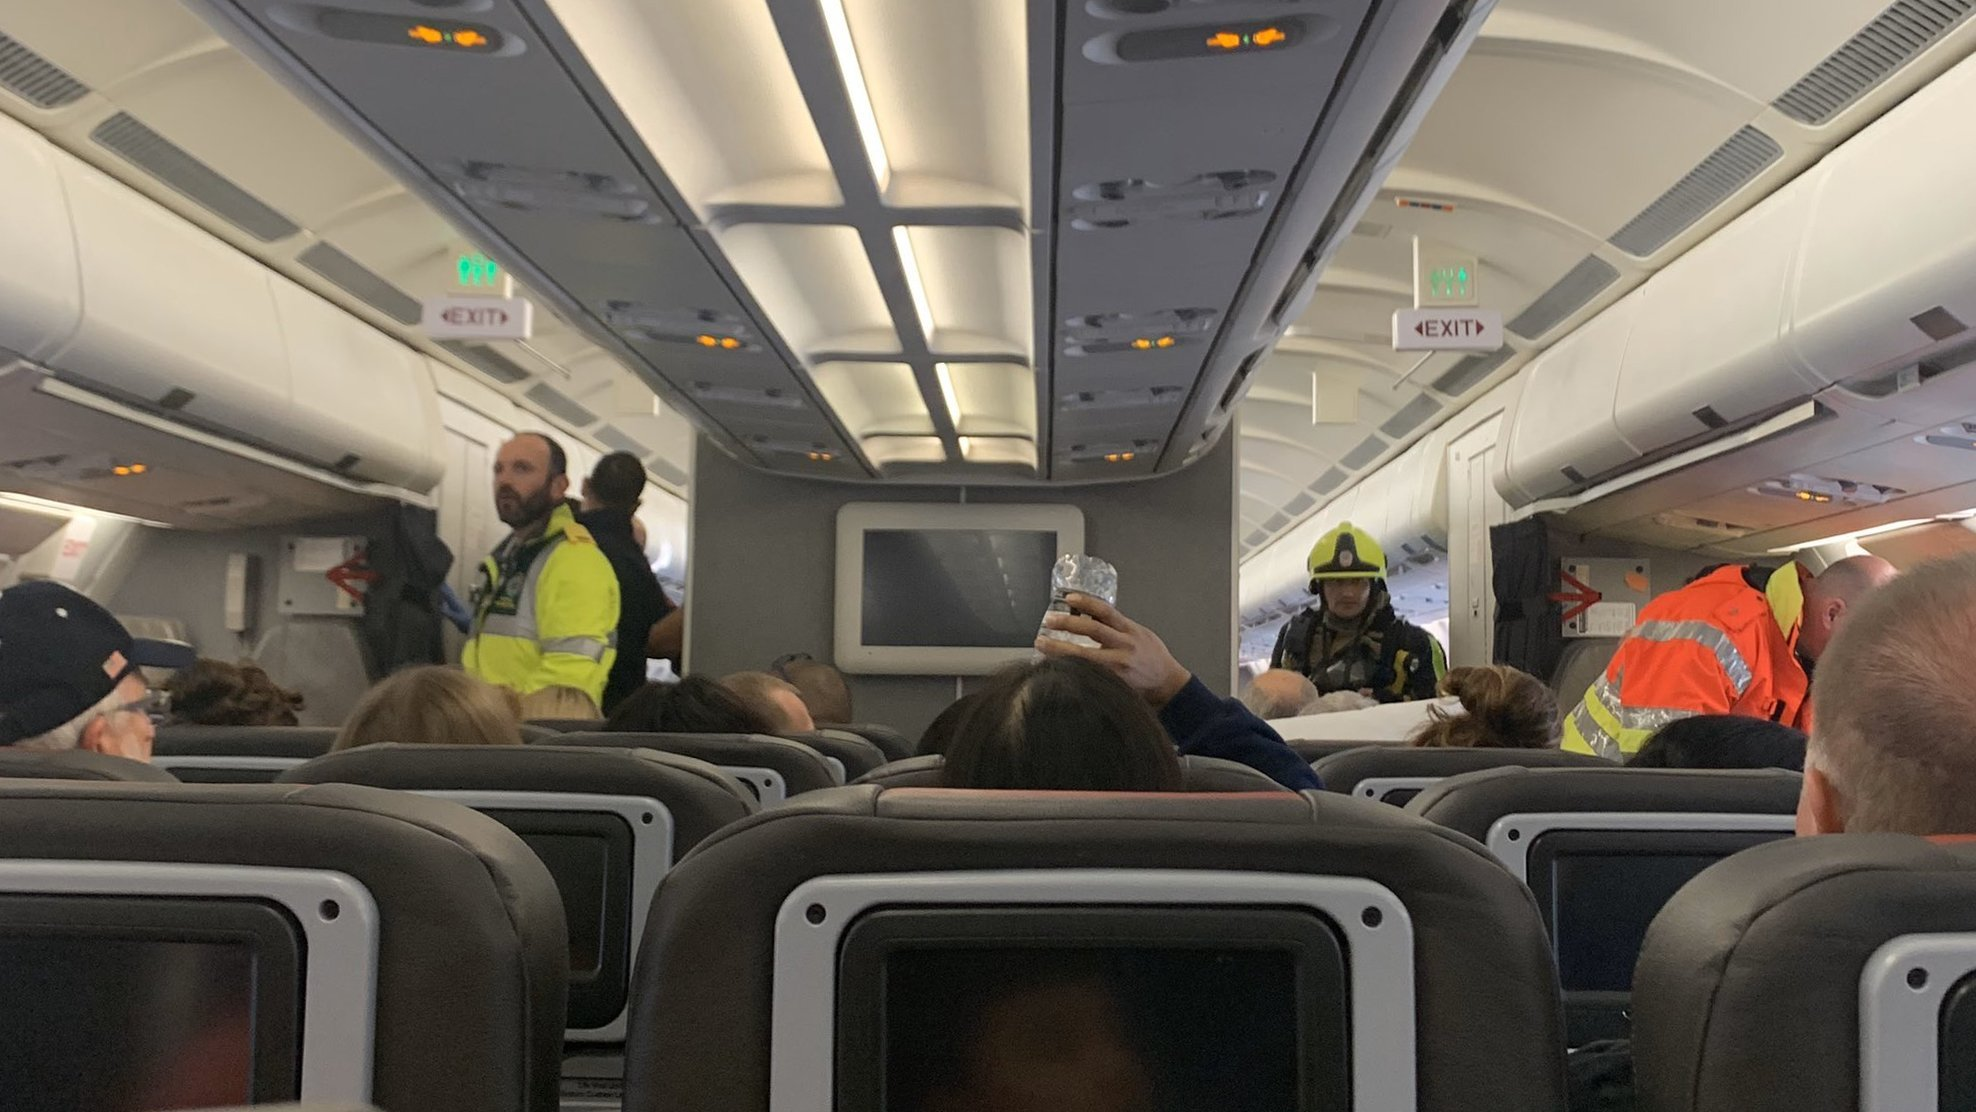 An American Airlines flight from London to Philadelphia landed in Ireland after cleaning chemicals leaked in the aircraft cabin on Oct. 21, 2019. (Credit: Katie Phillips via CNN)